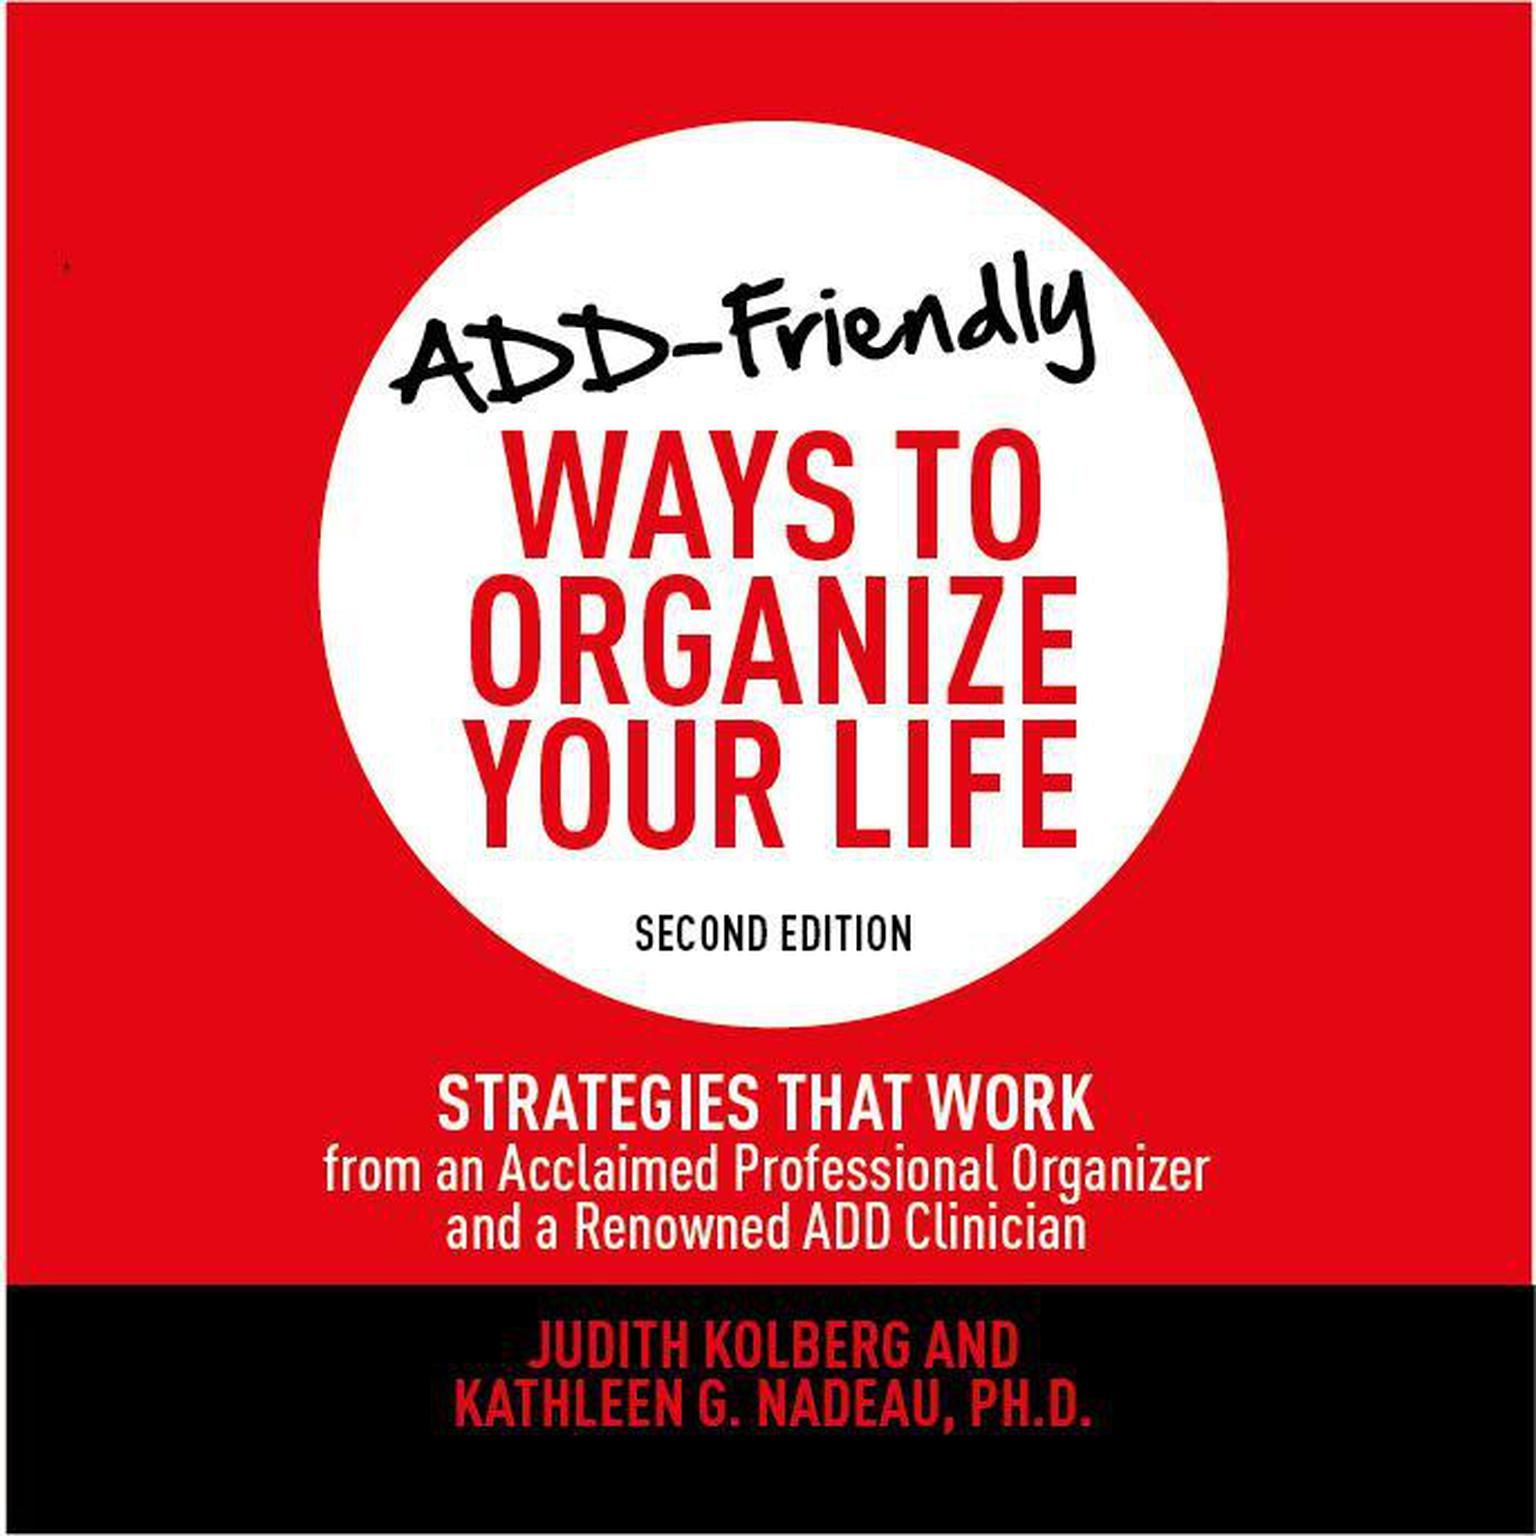 ADD-Friendly Ways to Organize Your Life Second Edition: Strategies That Work from an Acclaimed Professional Organizer and a Renowned ADD Clinician Audiobook, by Kathleen Nadeau